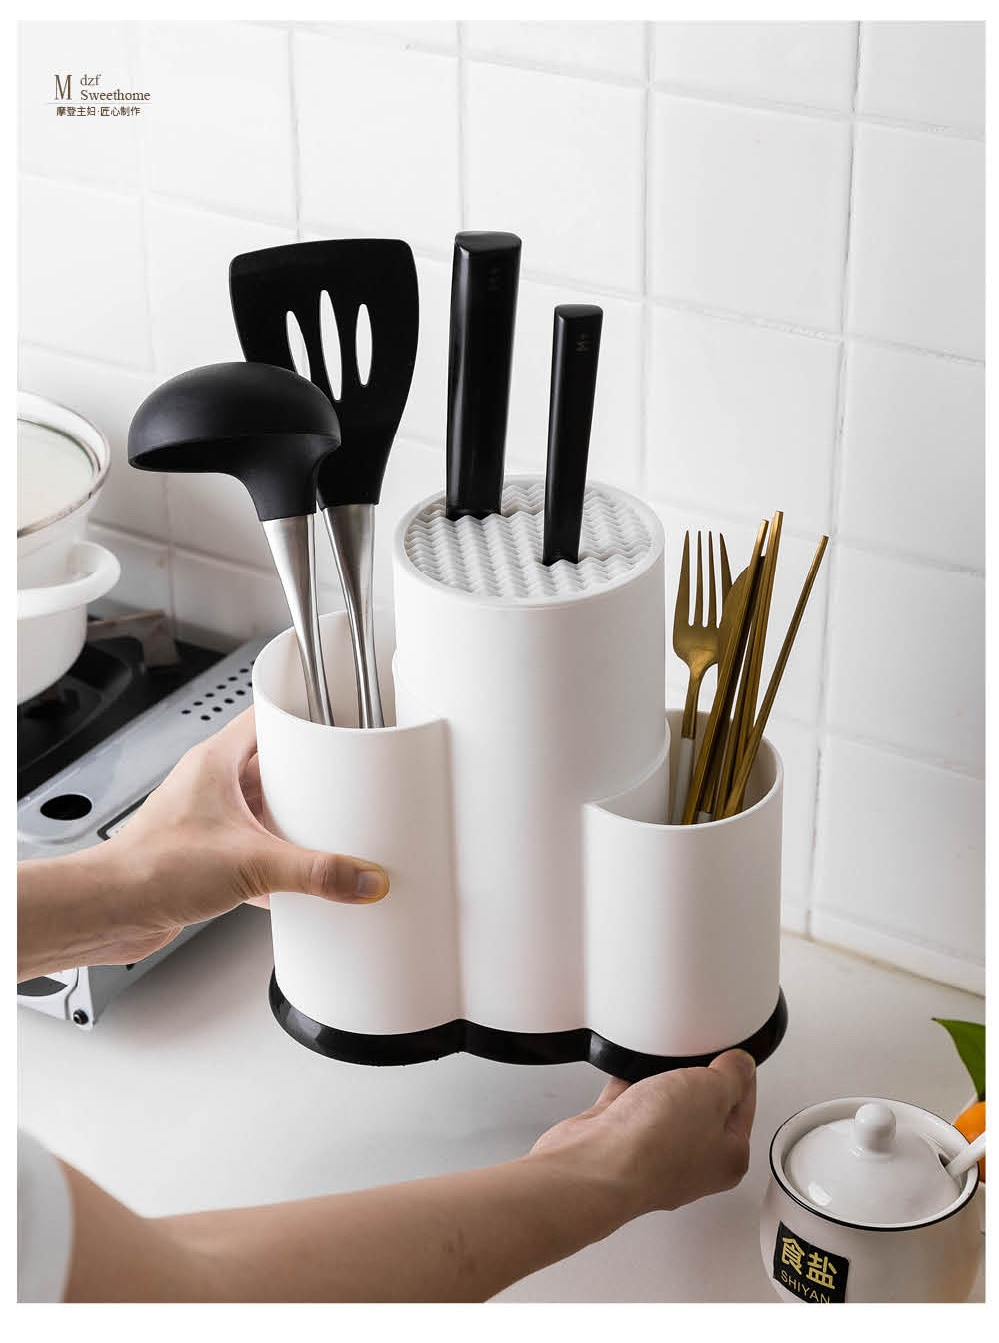 MDZF SWEETHOME Multi-Function Utensil Holder Knife Block PP Flatware Drainer Storage Box Spoon Fork Kitchen Organizer Rack